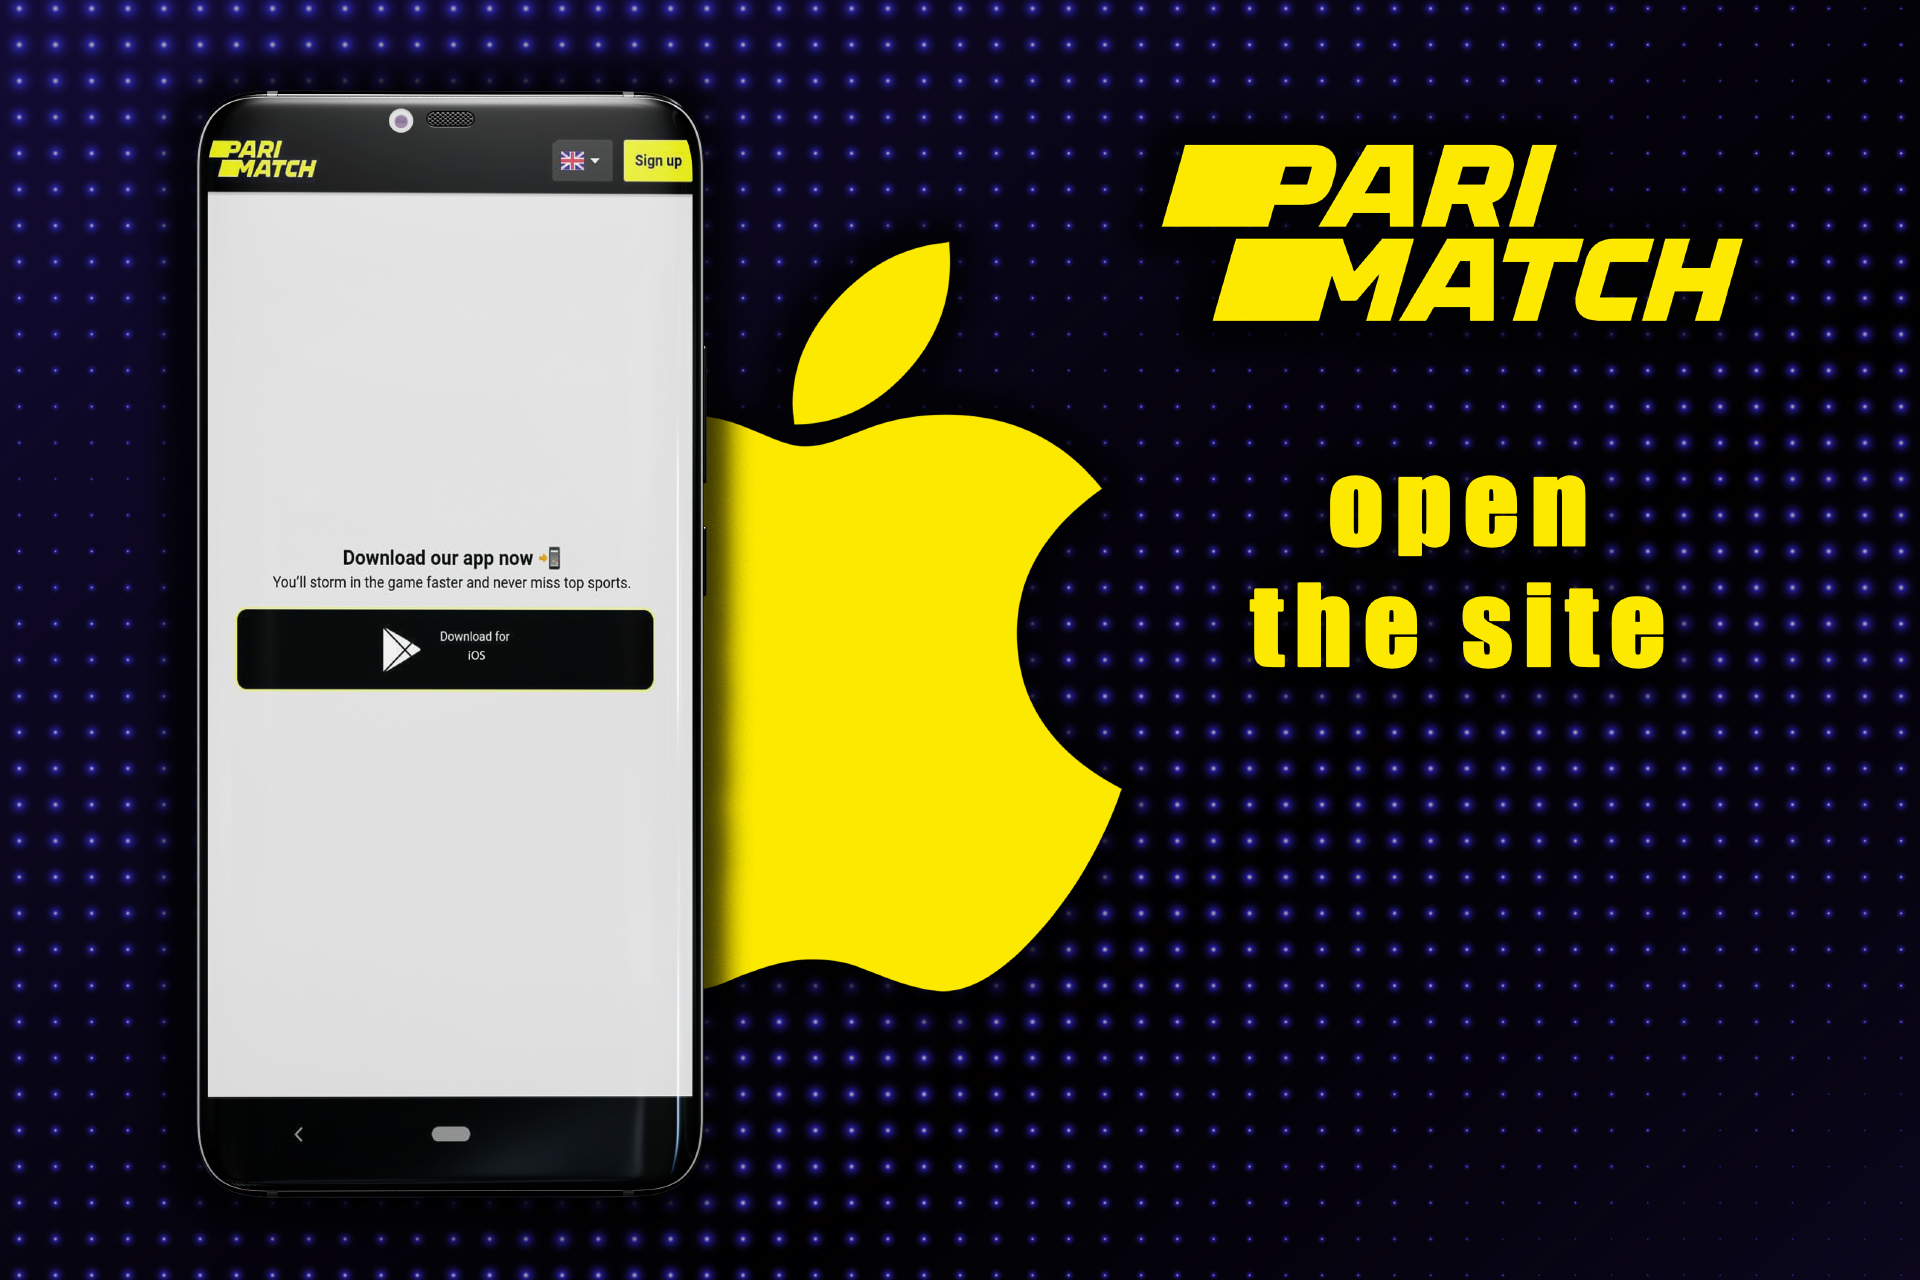 Open the website of Parimatch at the app page.